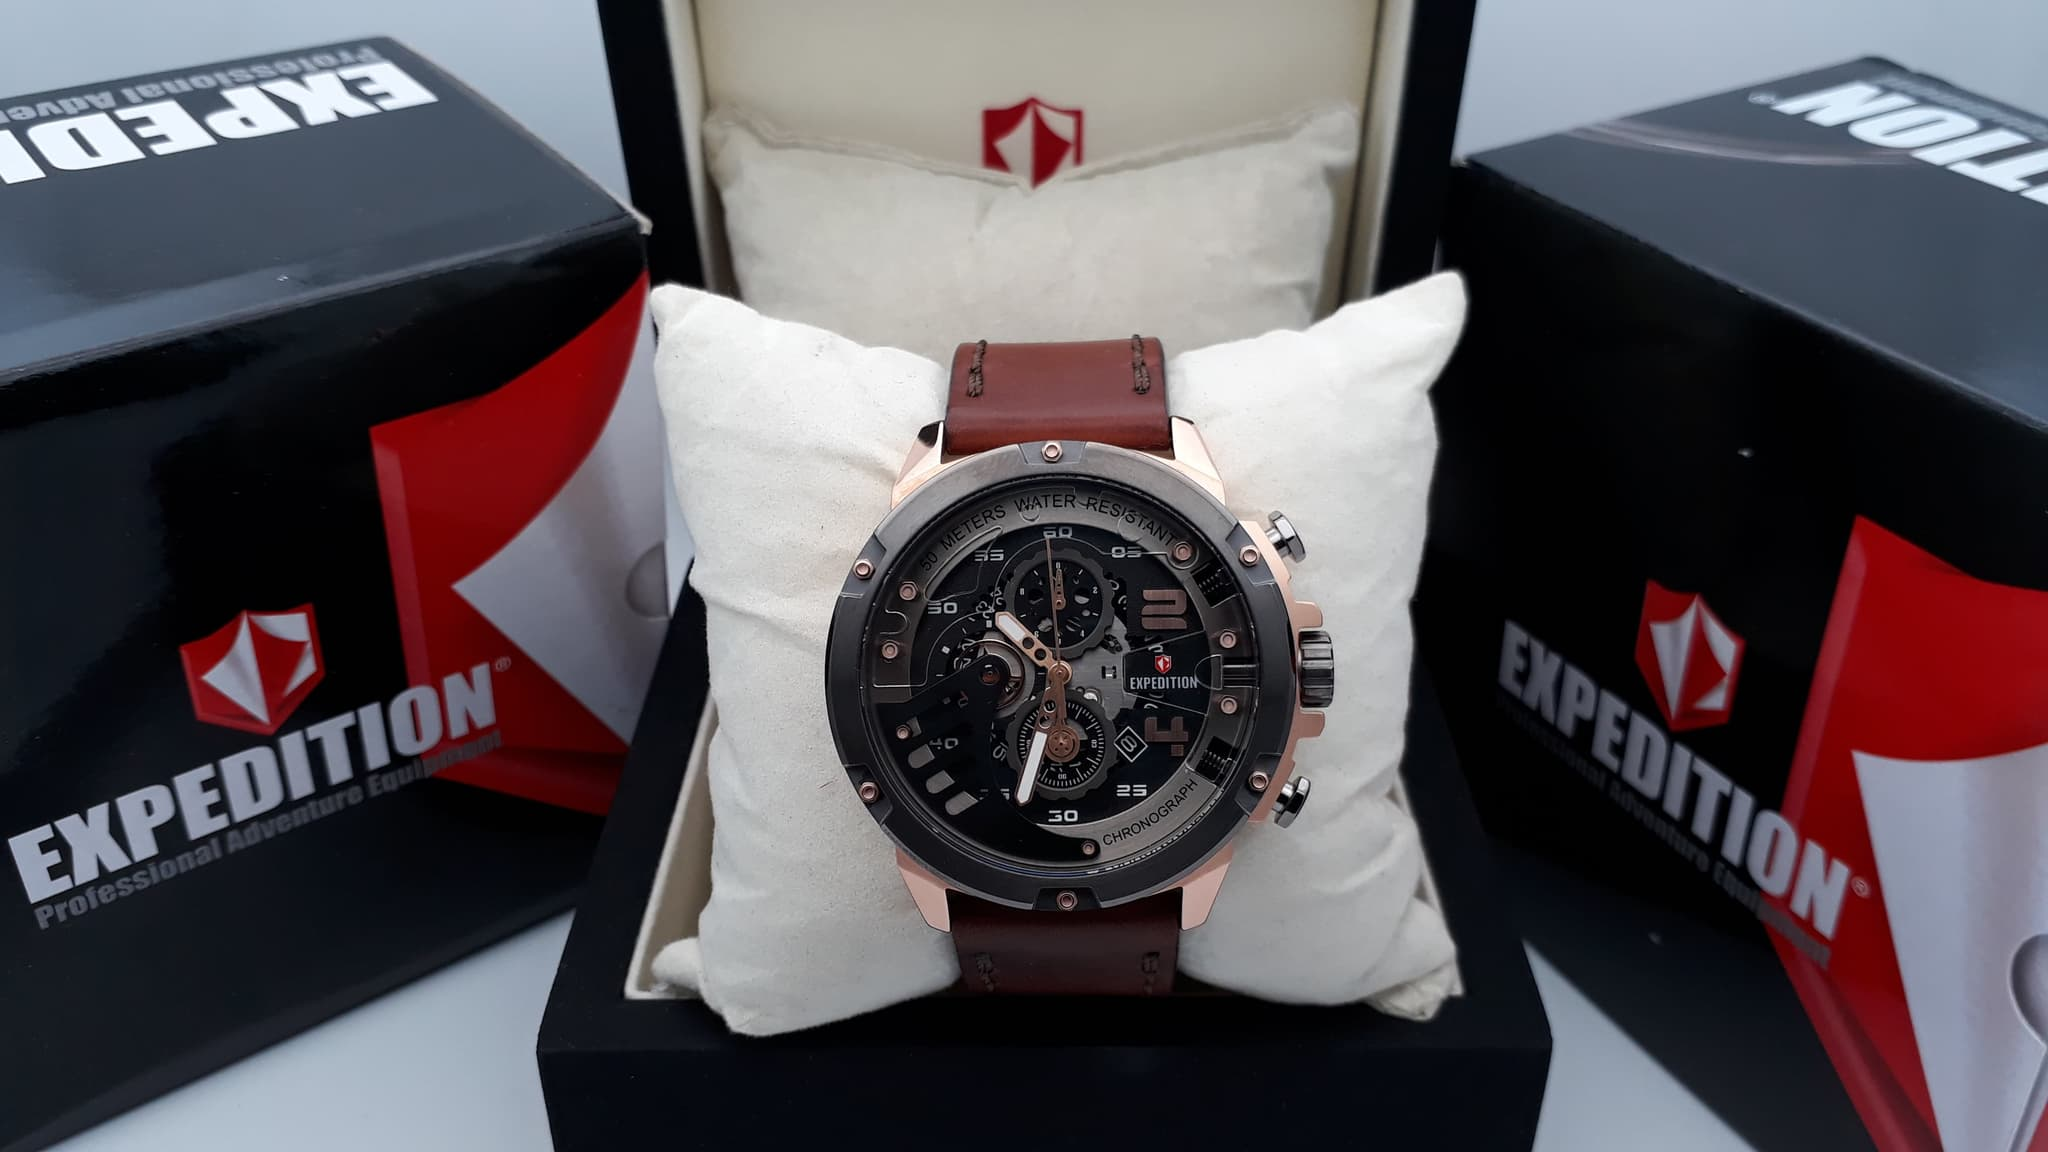 Jual Expedition E6700 Rose Gold Black Leather Brown For Men Original E6700m Chelli Watch Tokopedia